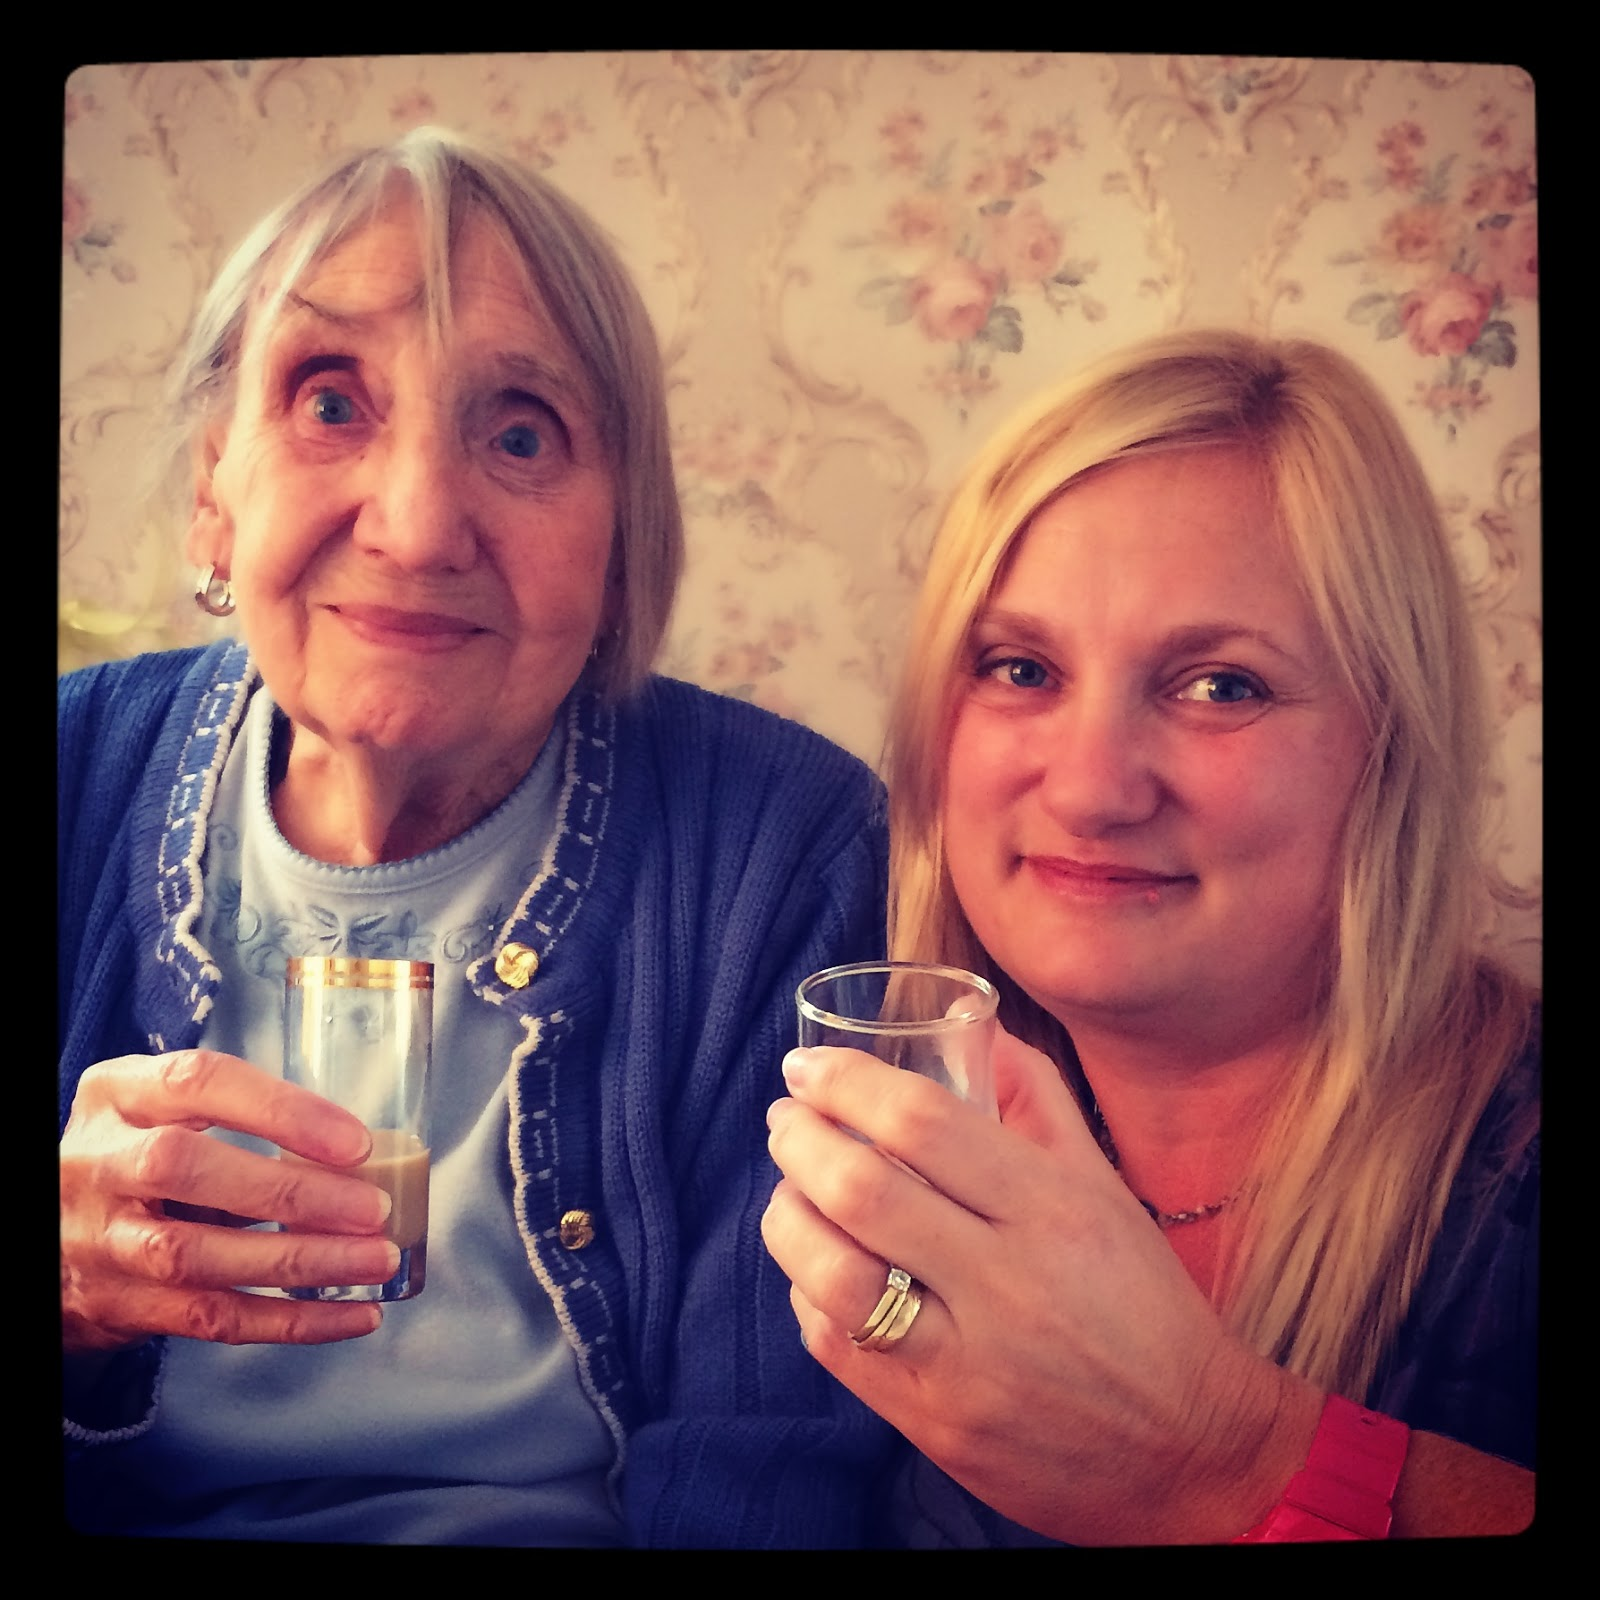 madmumof7 and granny- pic taken last summer